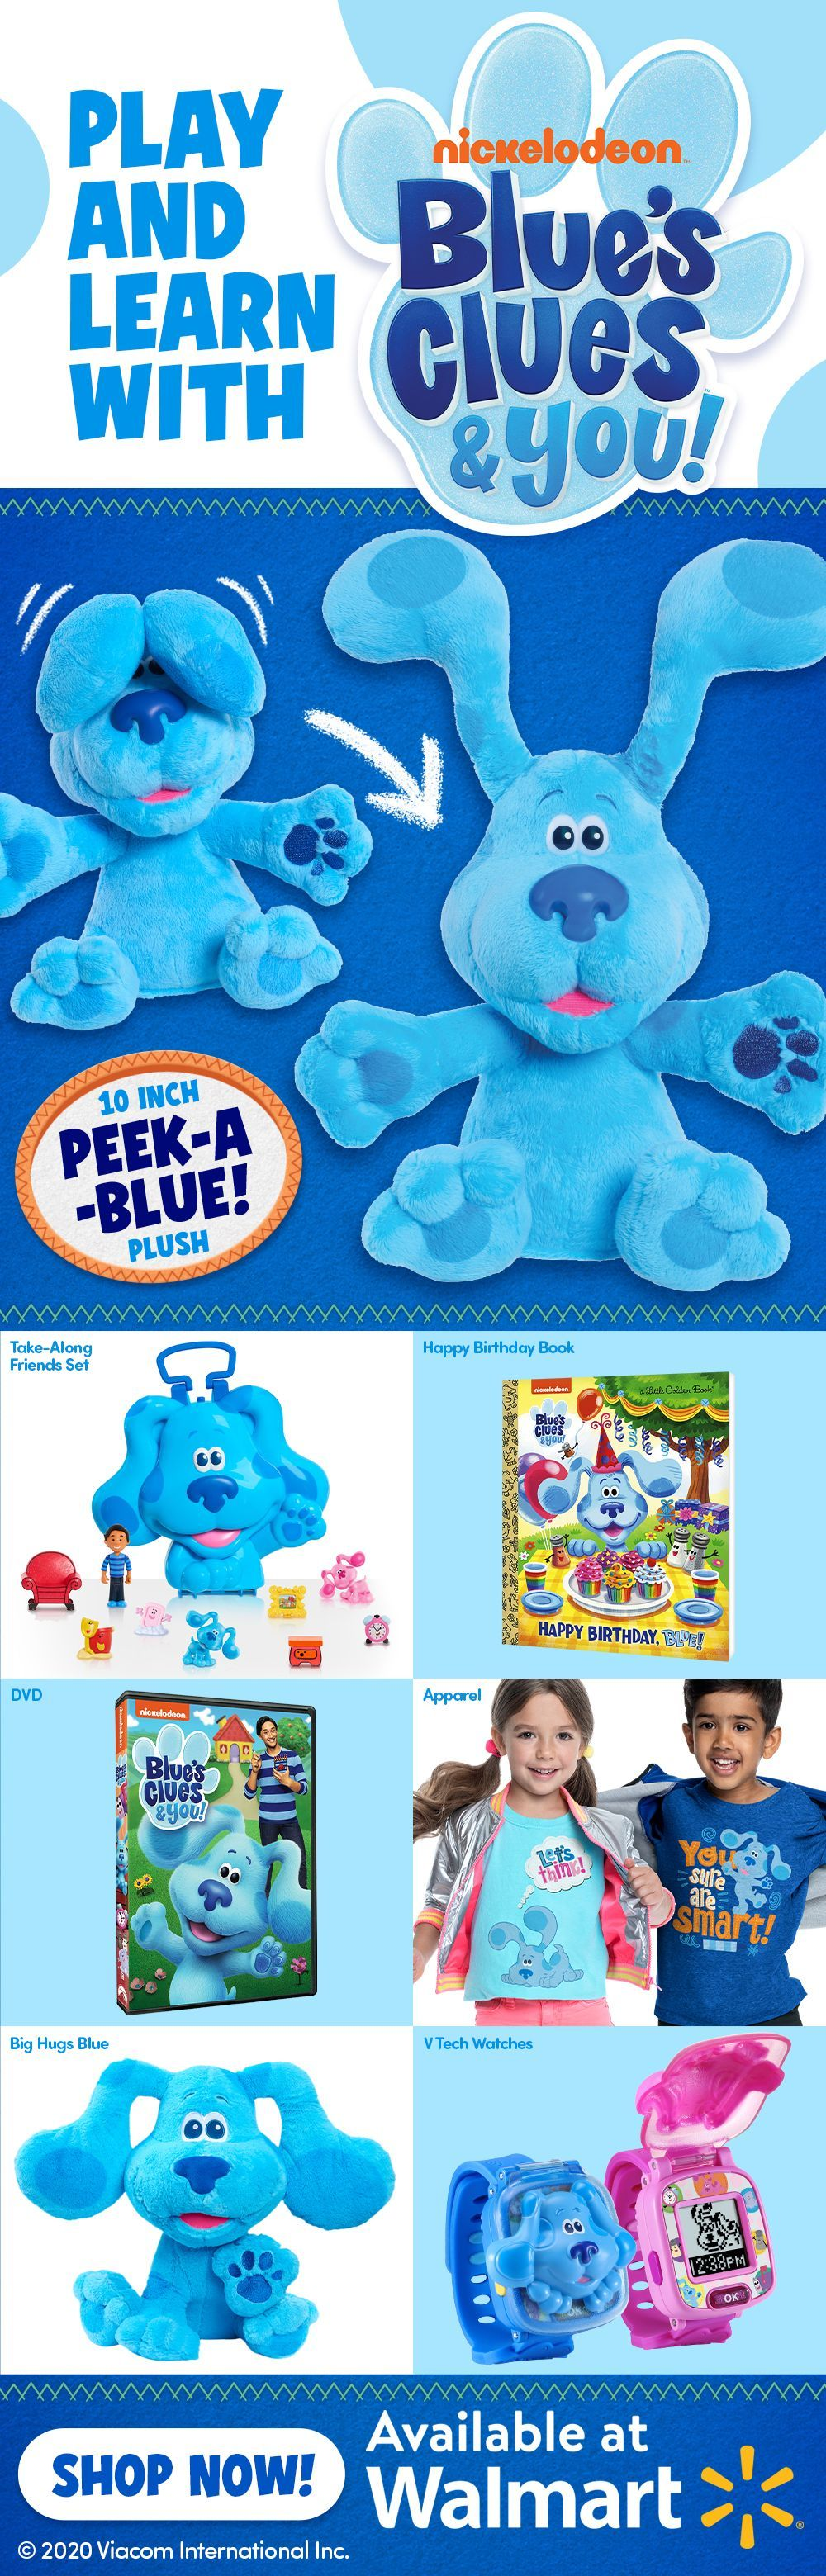 Pin On Blue S Clues You Blues Clues Play To Learn Kids